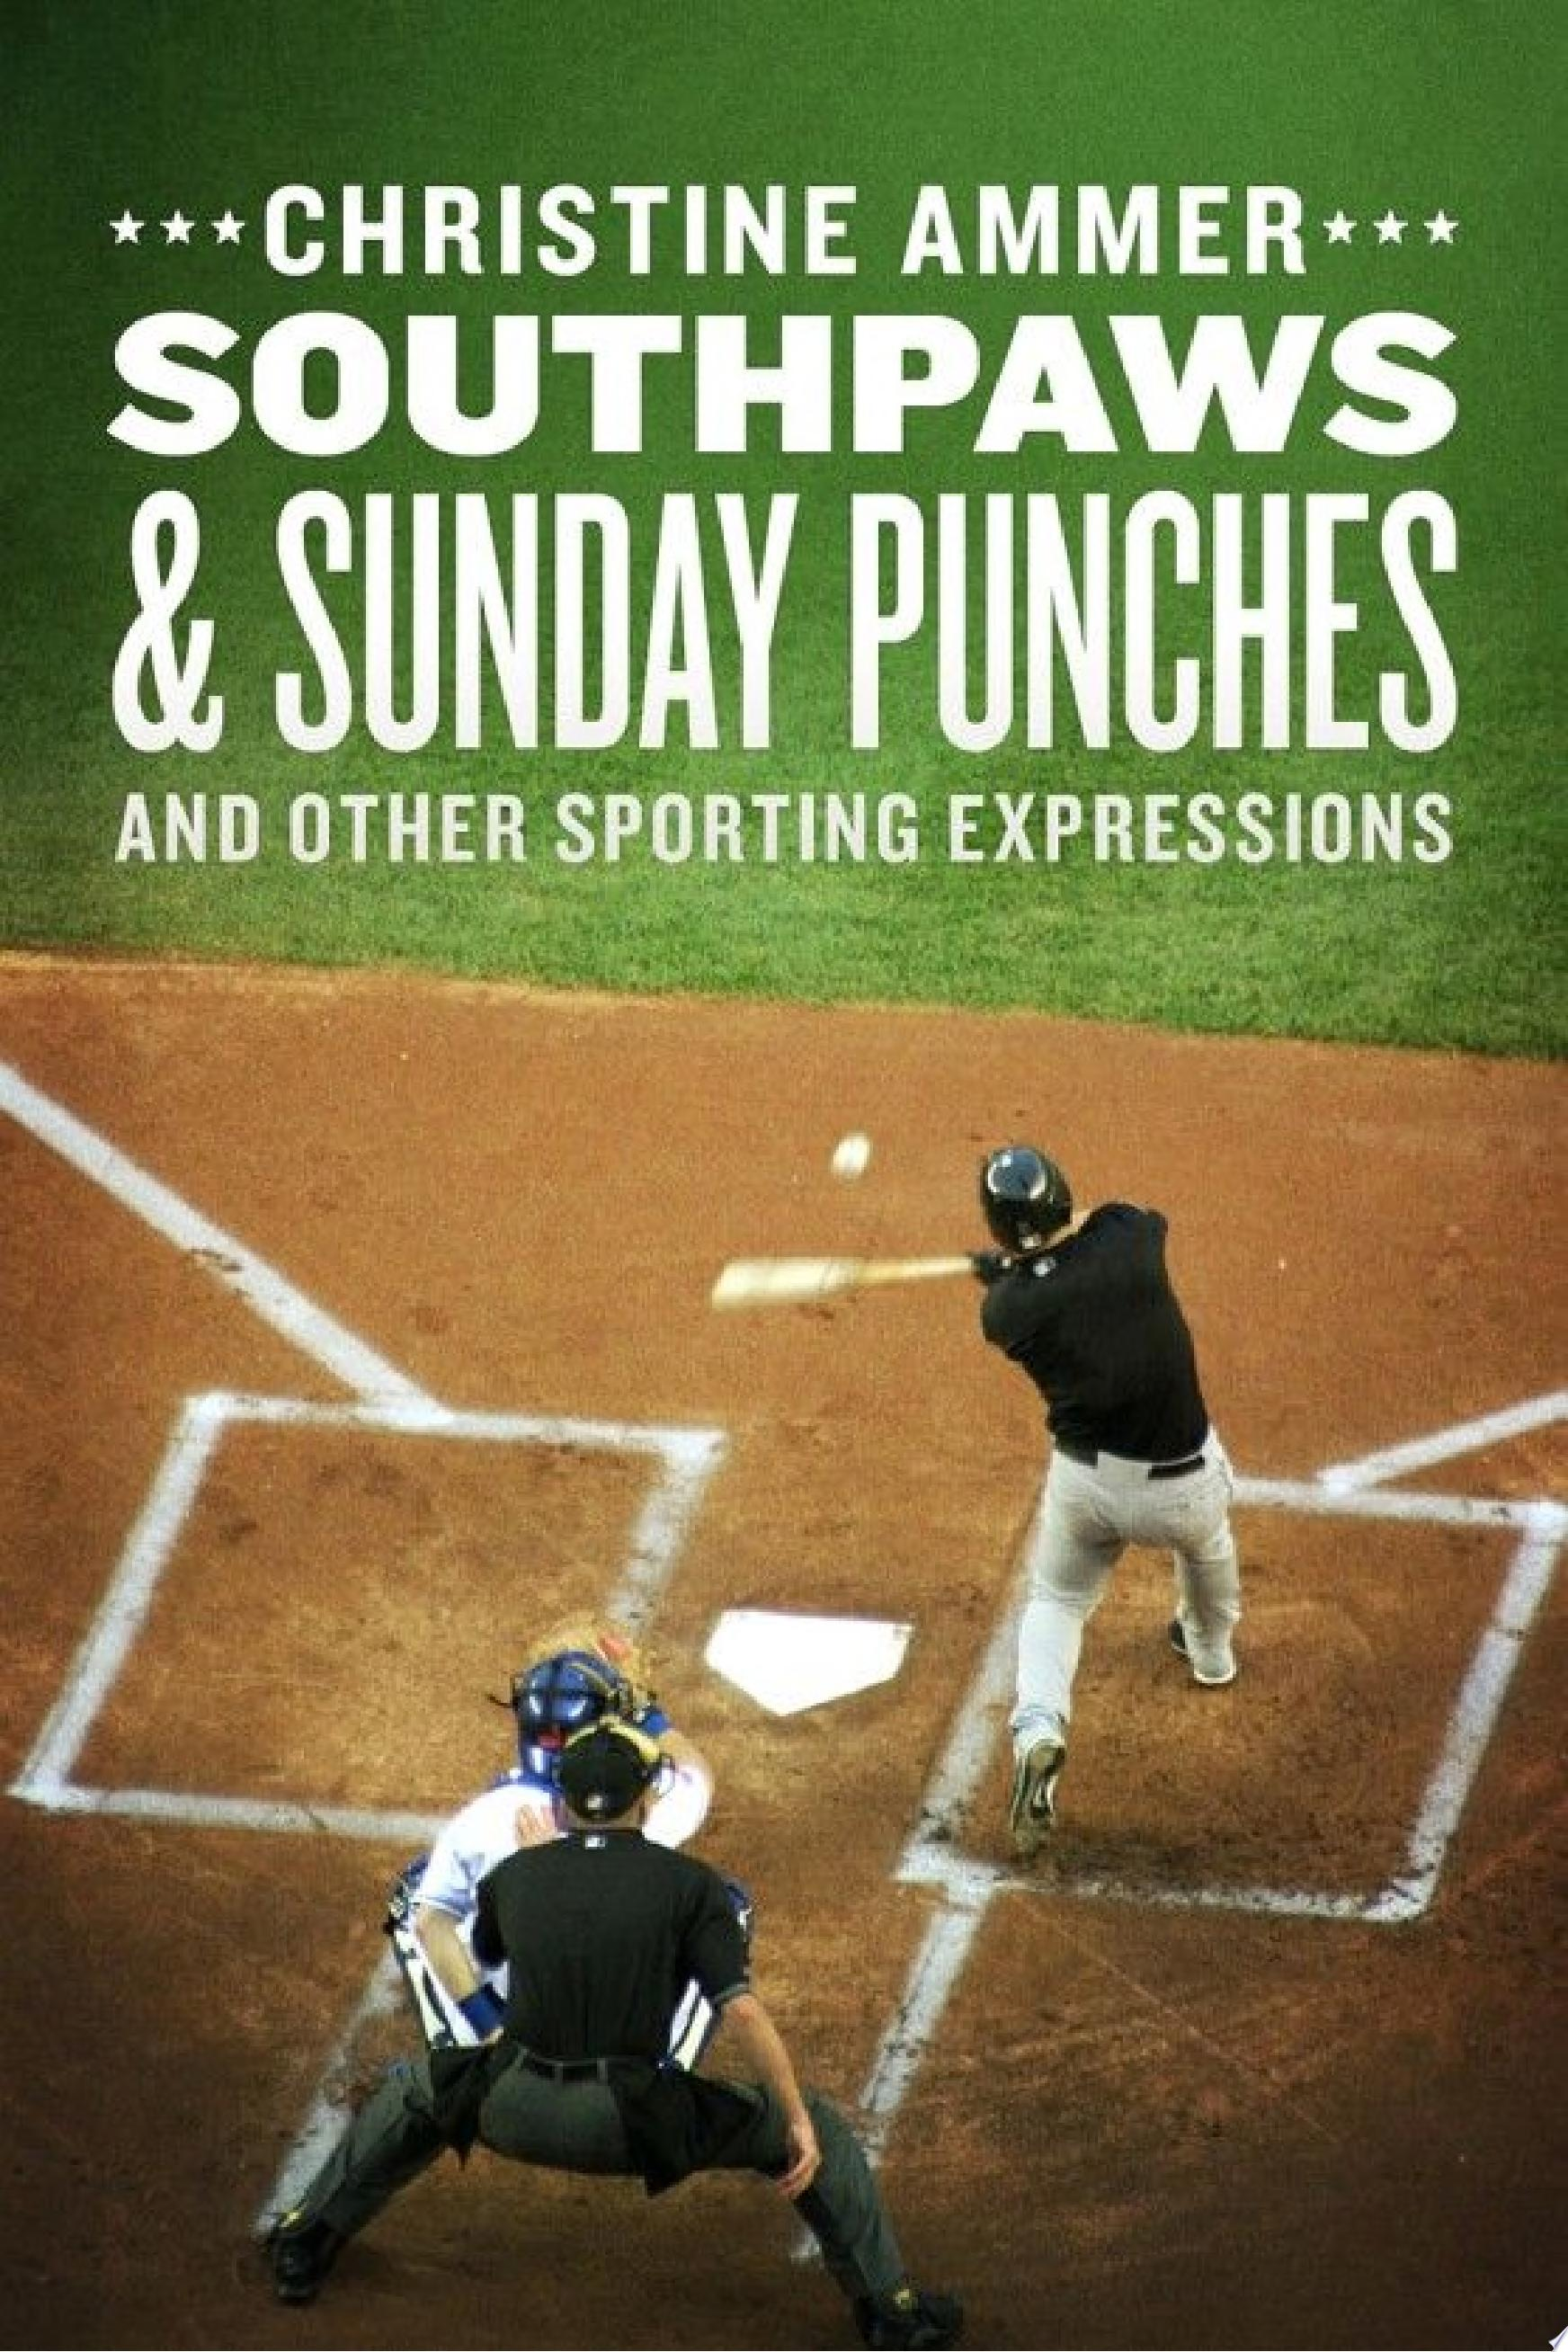 Southpaws   Sunday Punches and Other Sporting Expressions